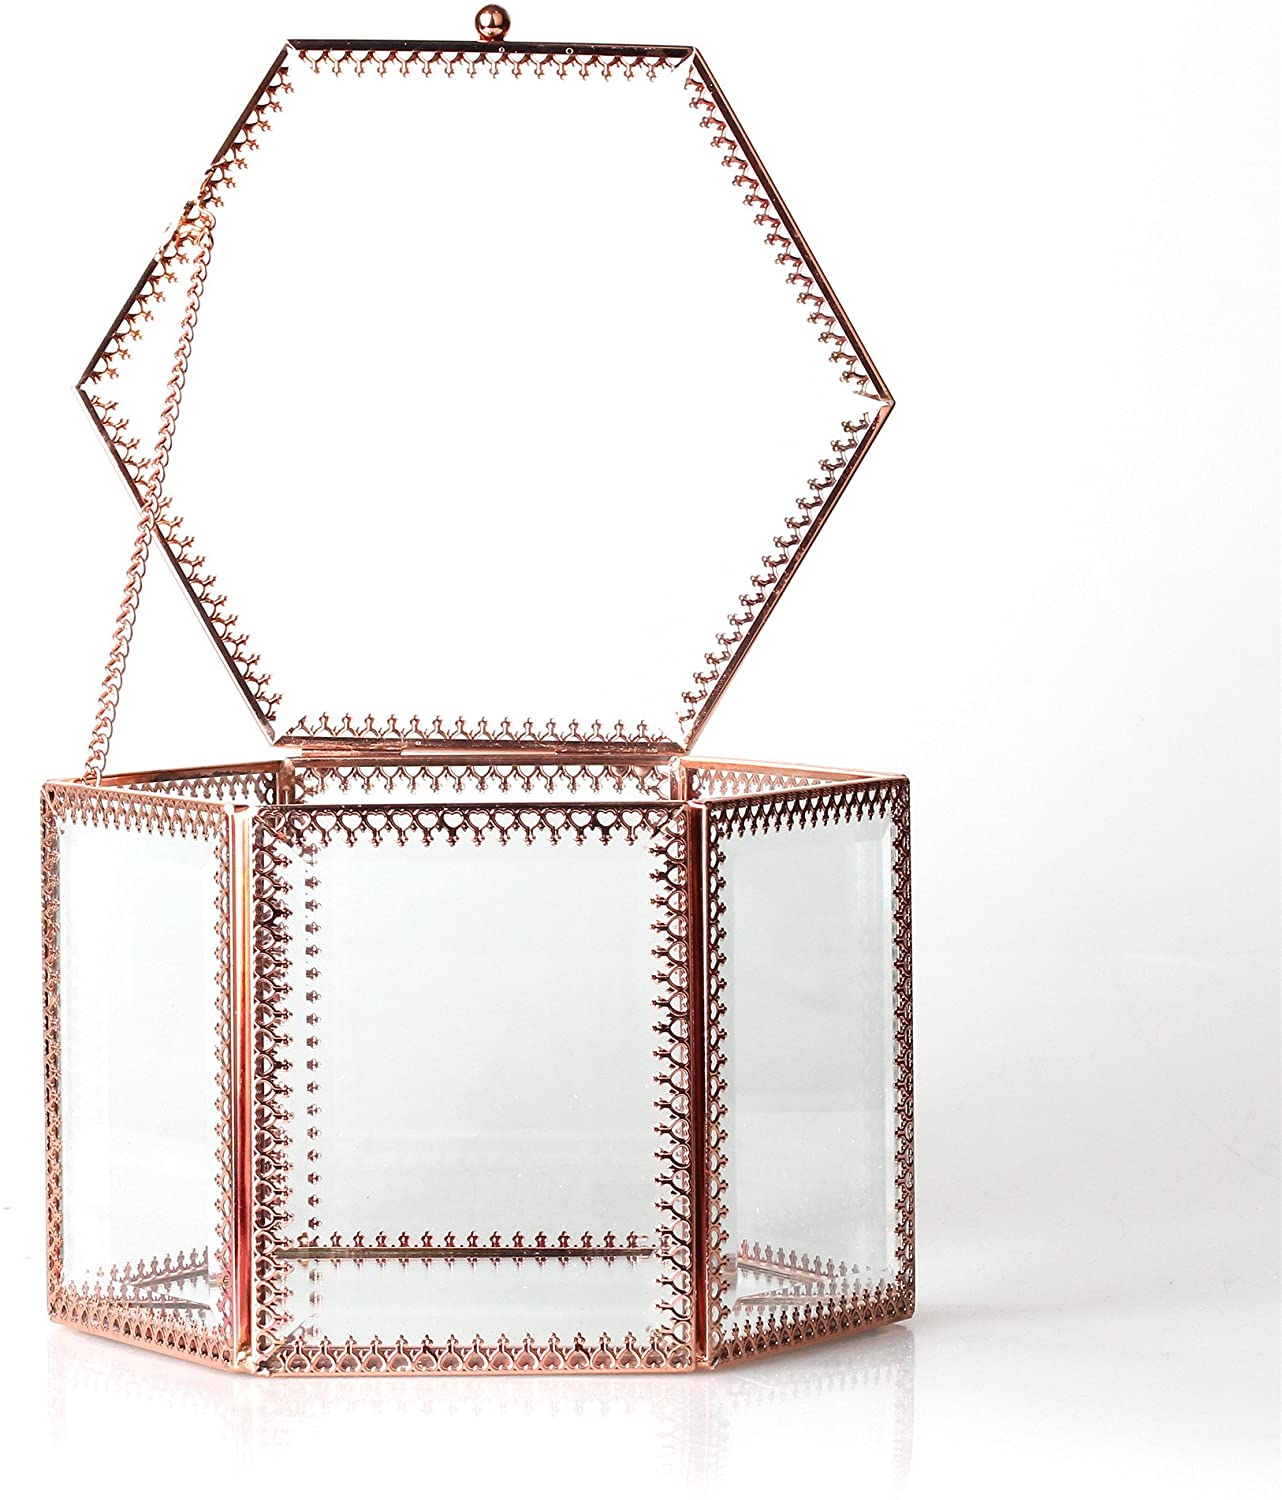 NCYP Vintage Faceted Hexagonal Prisms Mirrored Brass Glass Stylish Jewellery Box Organiser Display Storage Case for Rings Earrings Necklace Birthday Party Gift with Hinged Top Lid, Glass Box Only